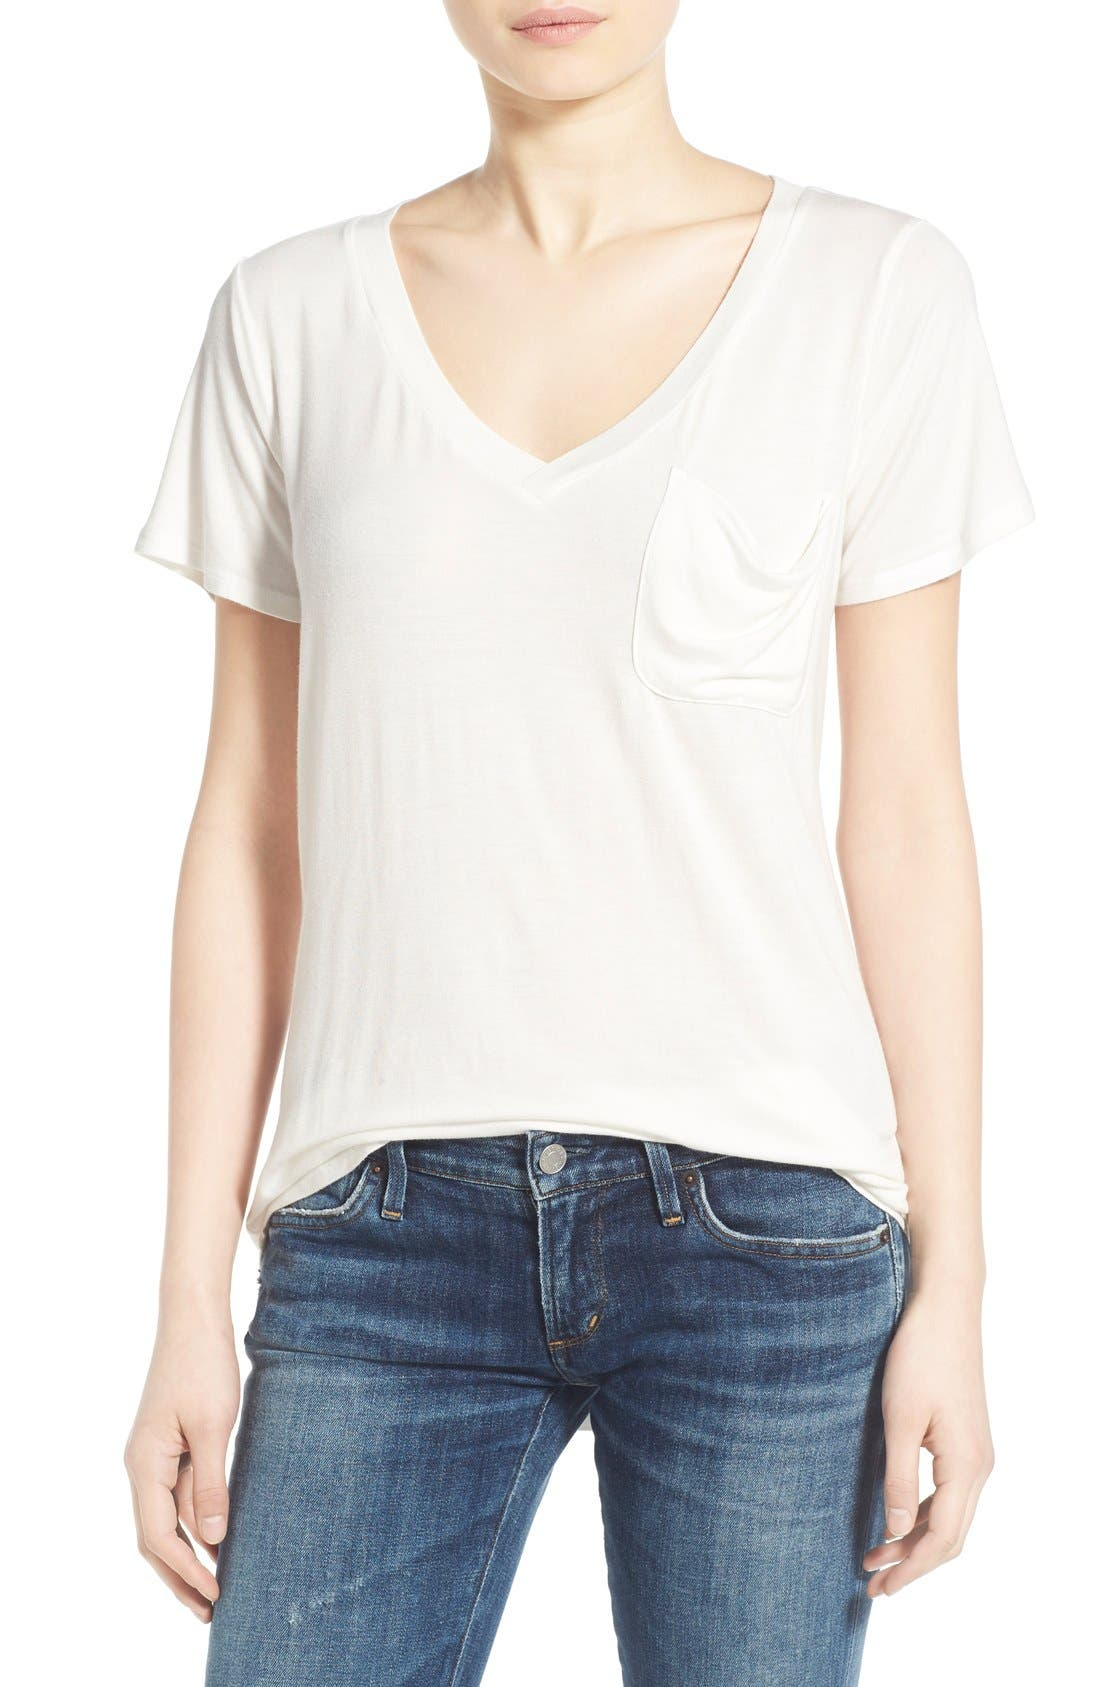 Main Image - Socialite V-Neck Pocket Tee